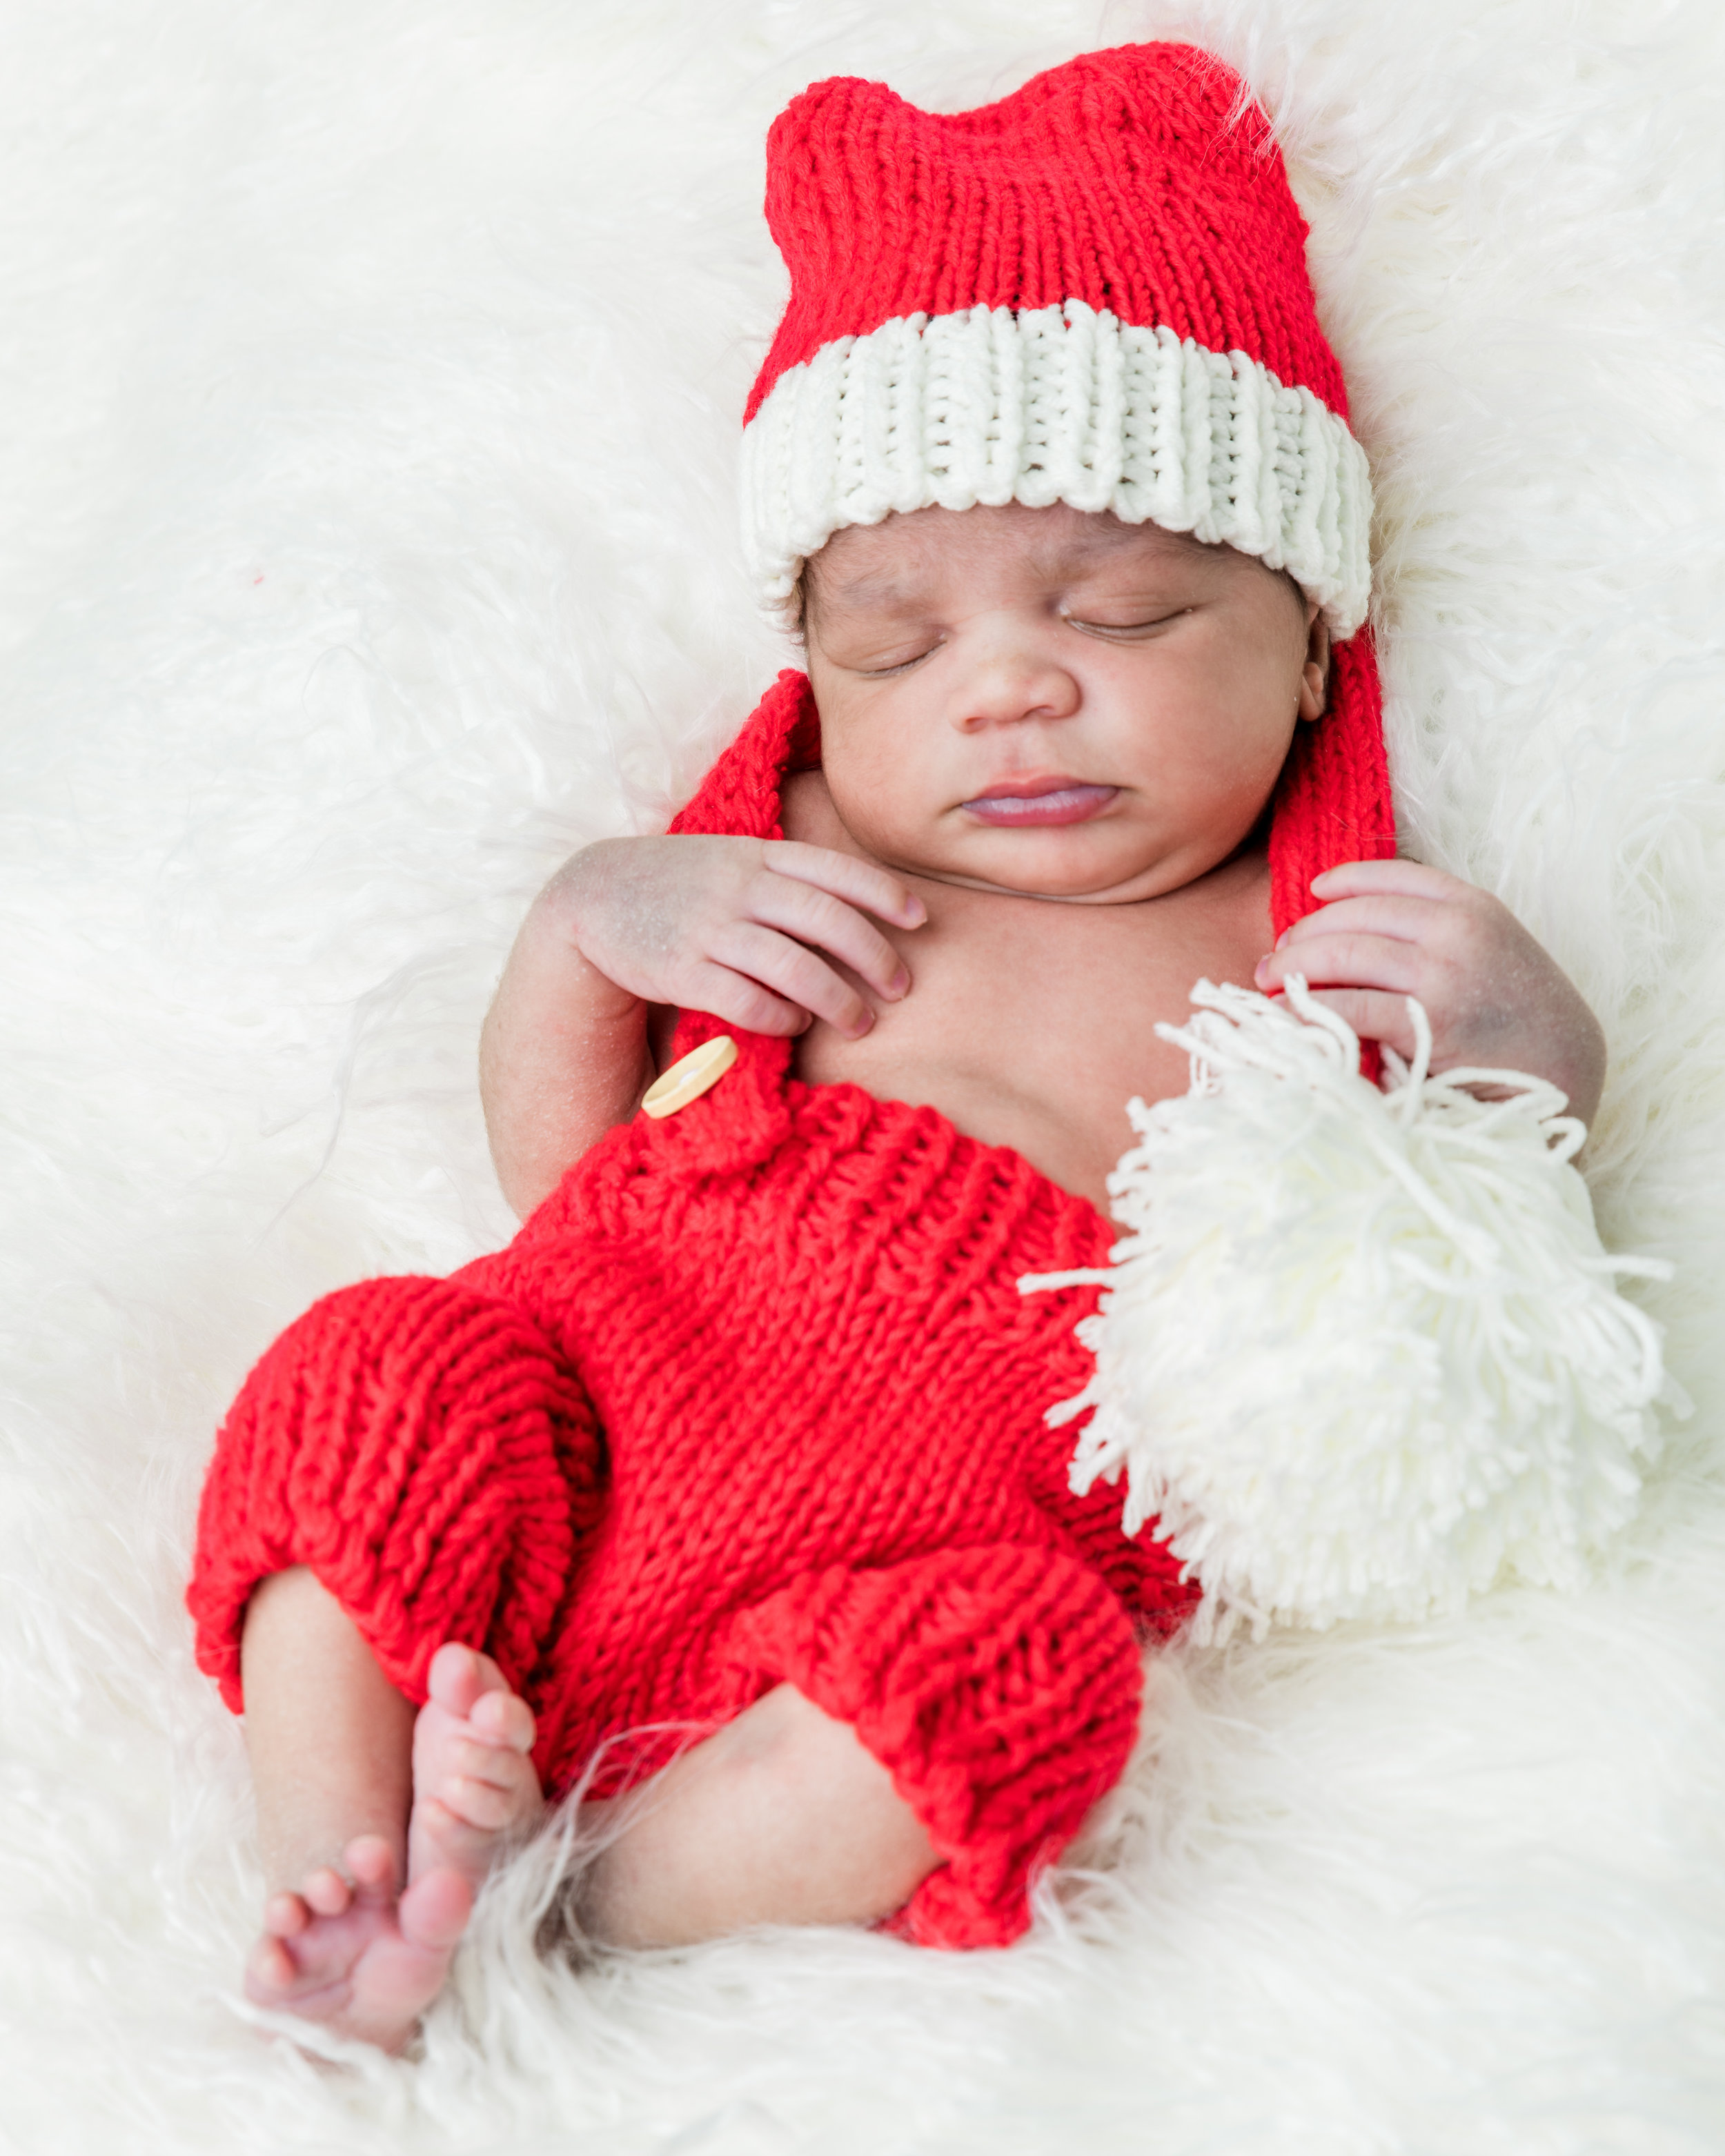 2017_December_02-Walls_Newborn_and_Family_Shoot-43564.jpg